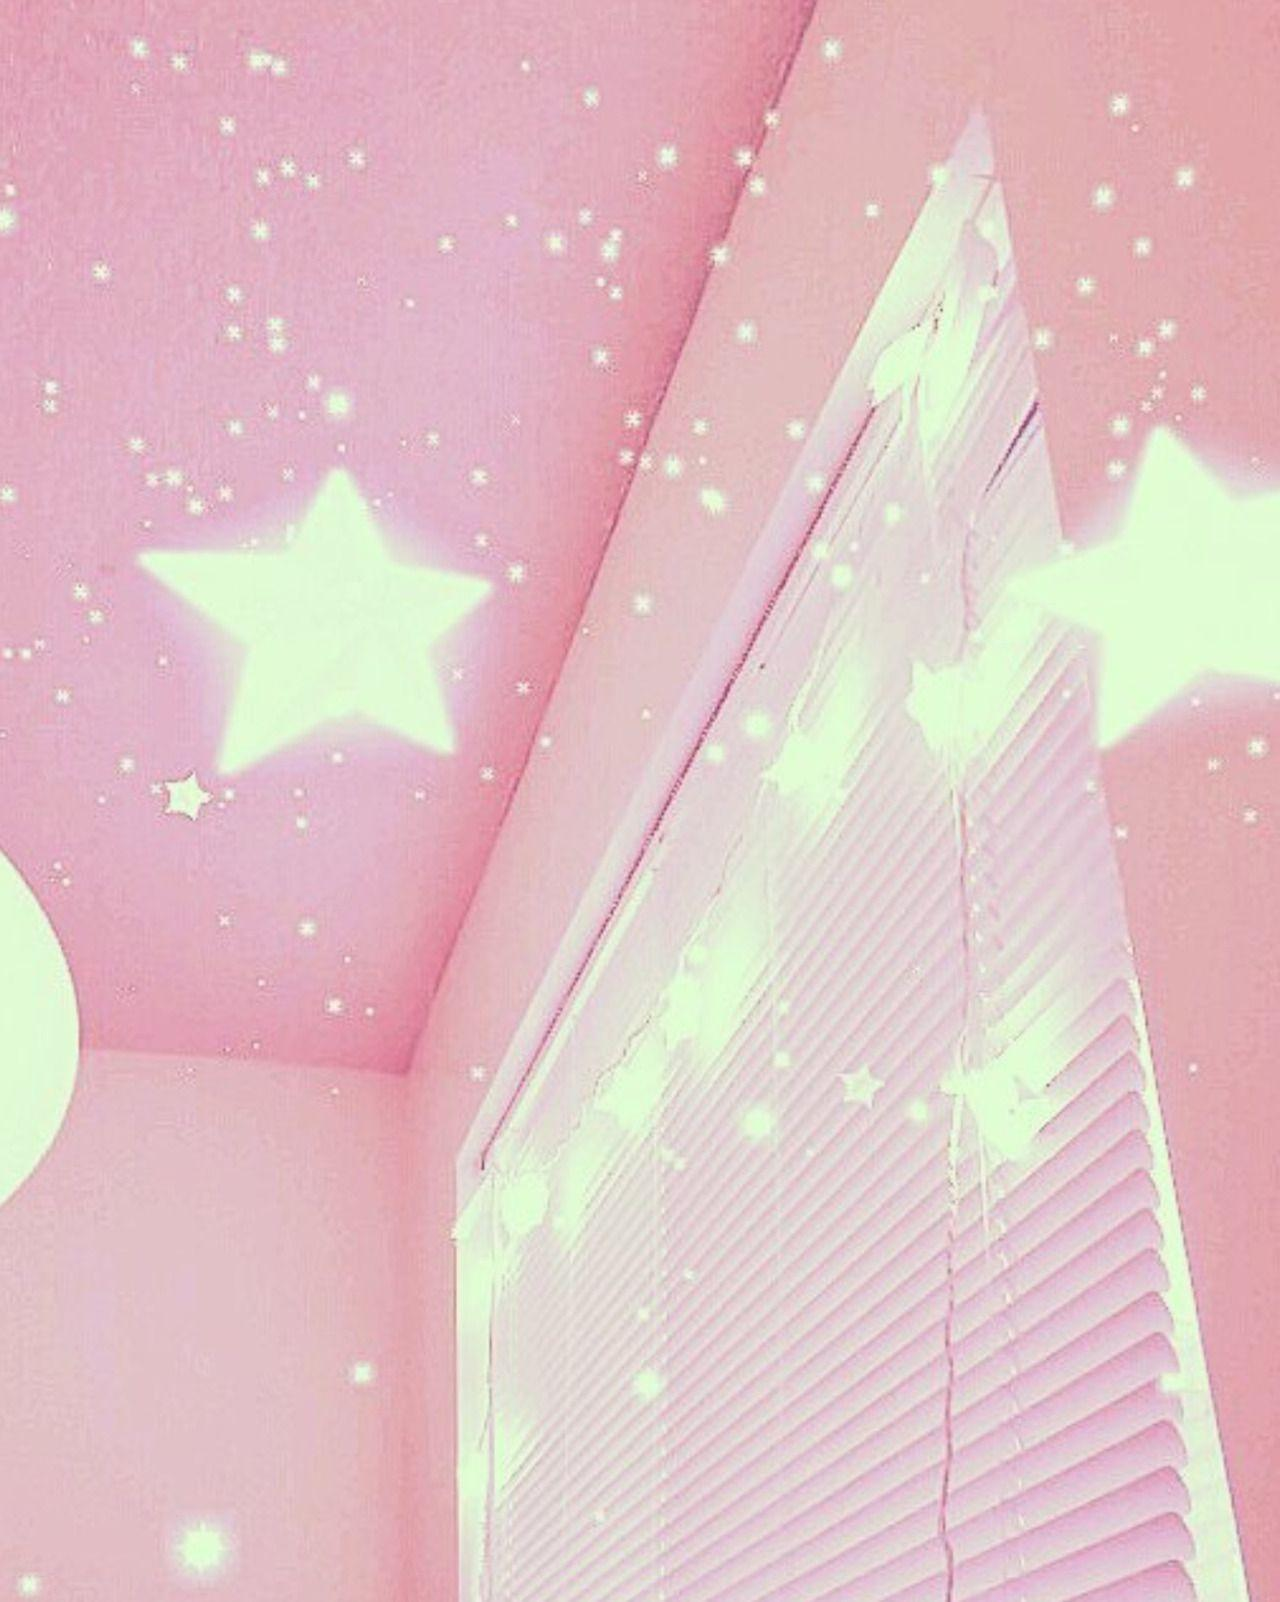 Pink Aesthetic Wallpapers - Wallpaper Cave